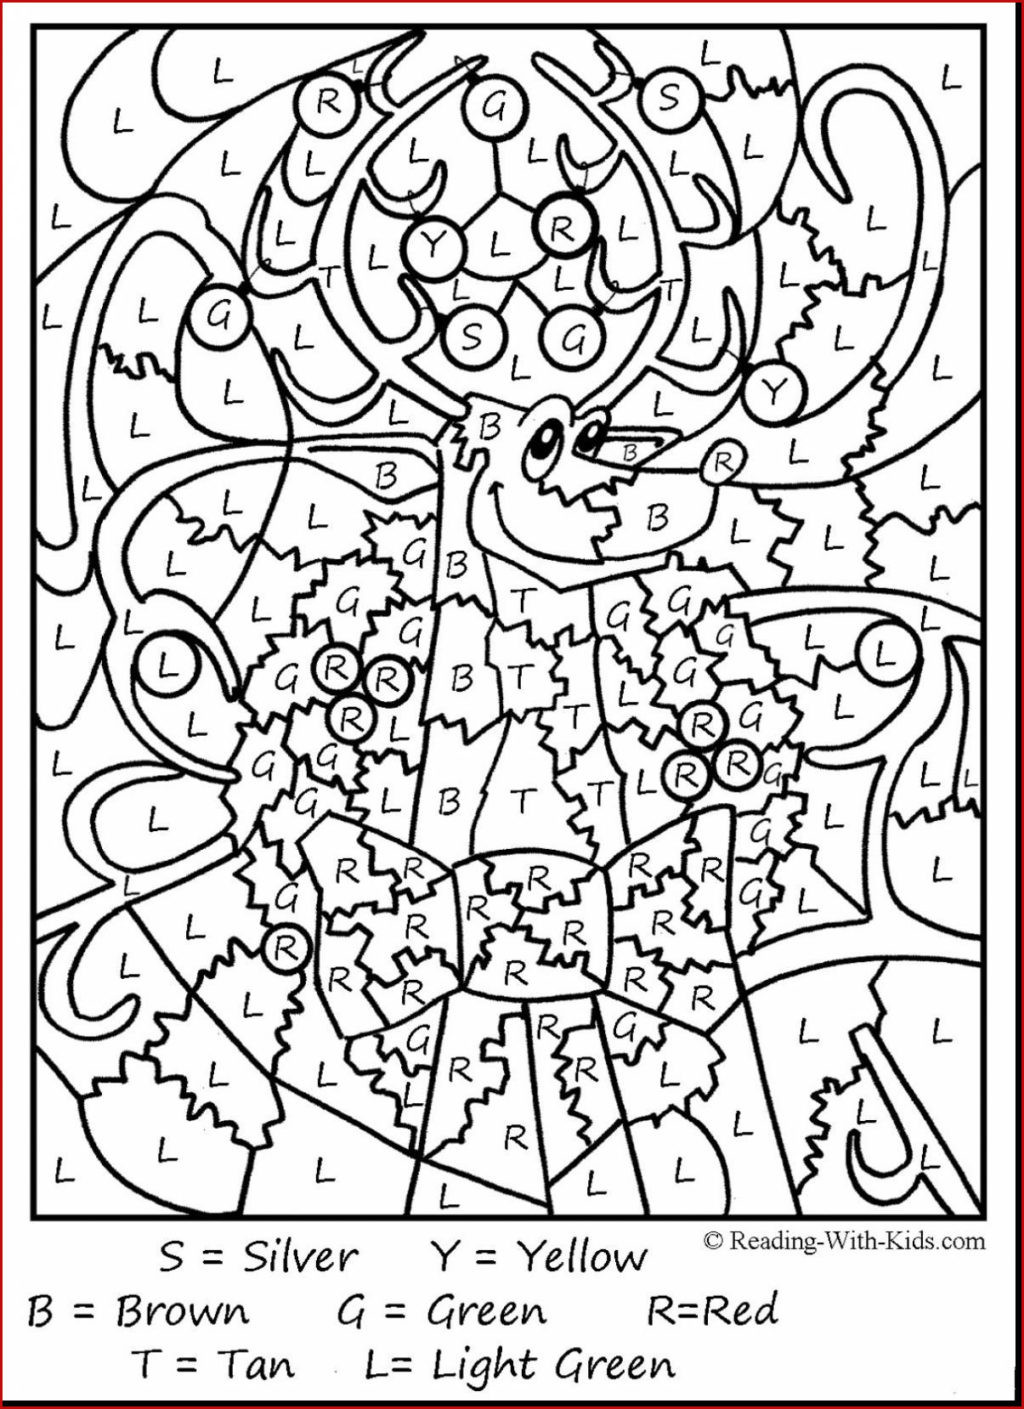 3rd Grade Coloring Worksheets Coloring Amazing 3rd Grade Coloring Pages Image Ideas 2nd